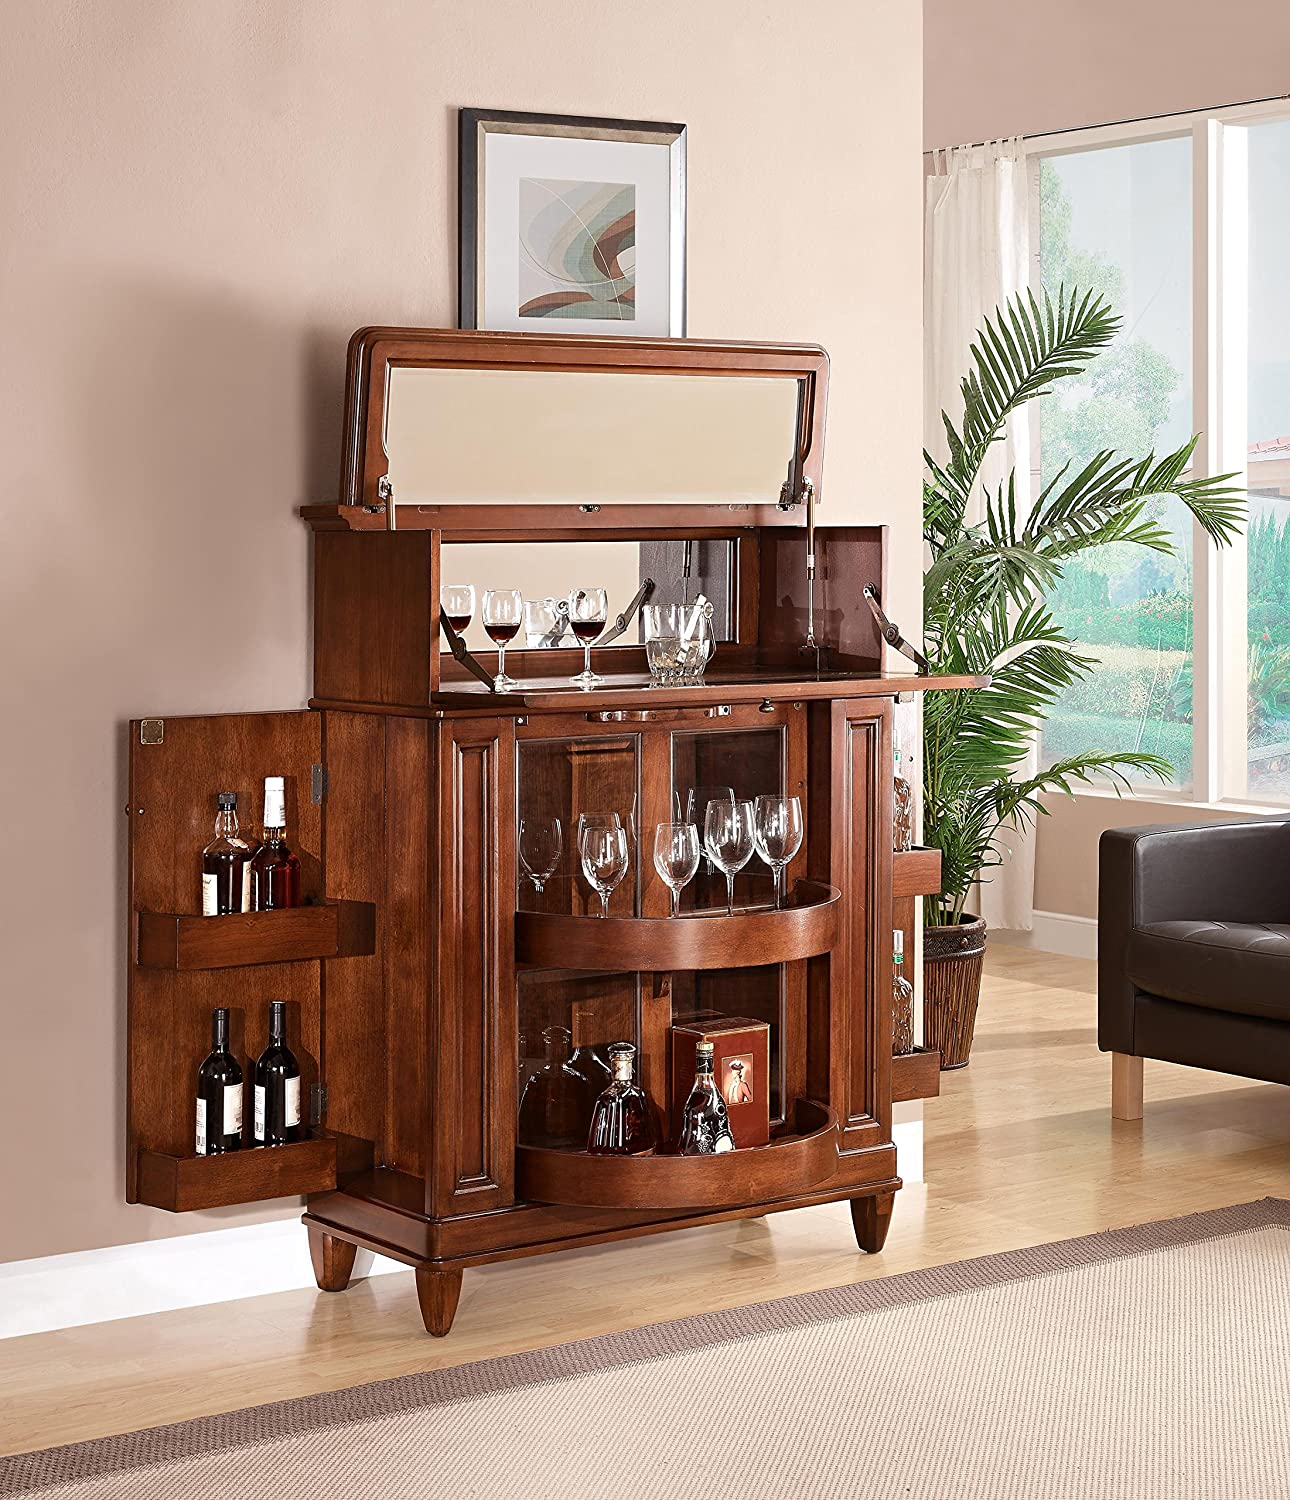 Dining Room Furniture Glass Wood Home Dining Room Bar Cabinet Furniture Bottle